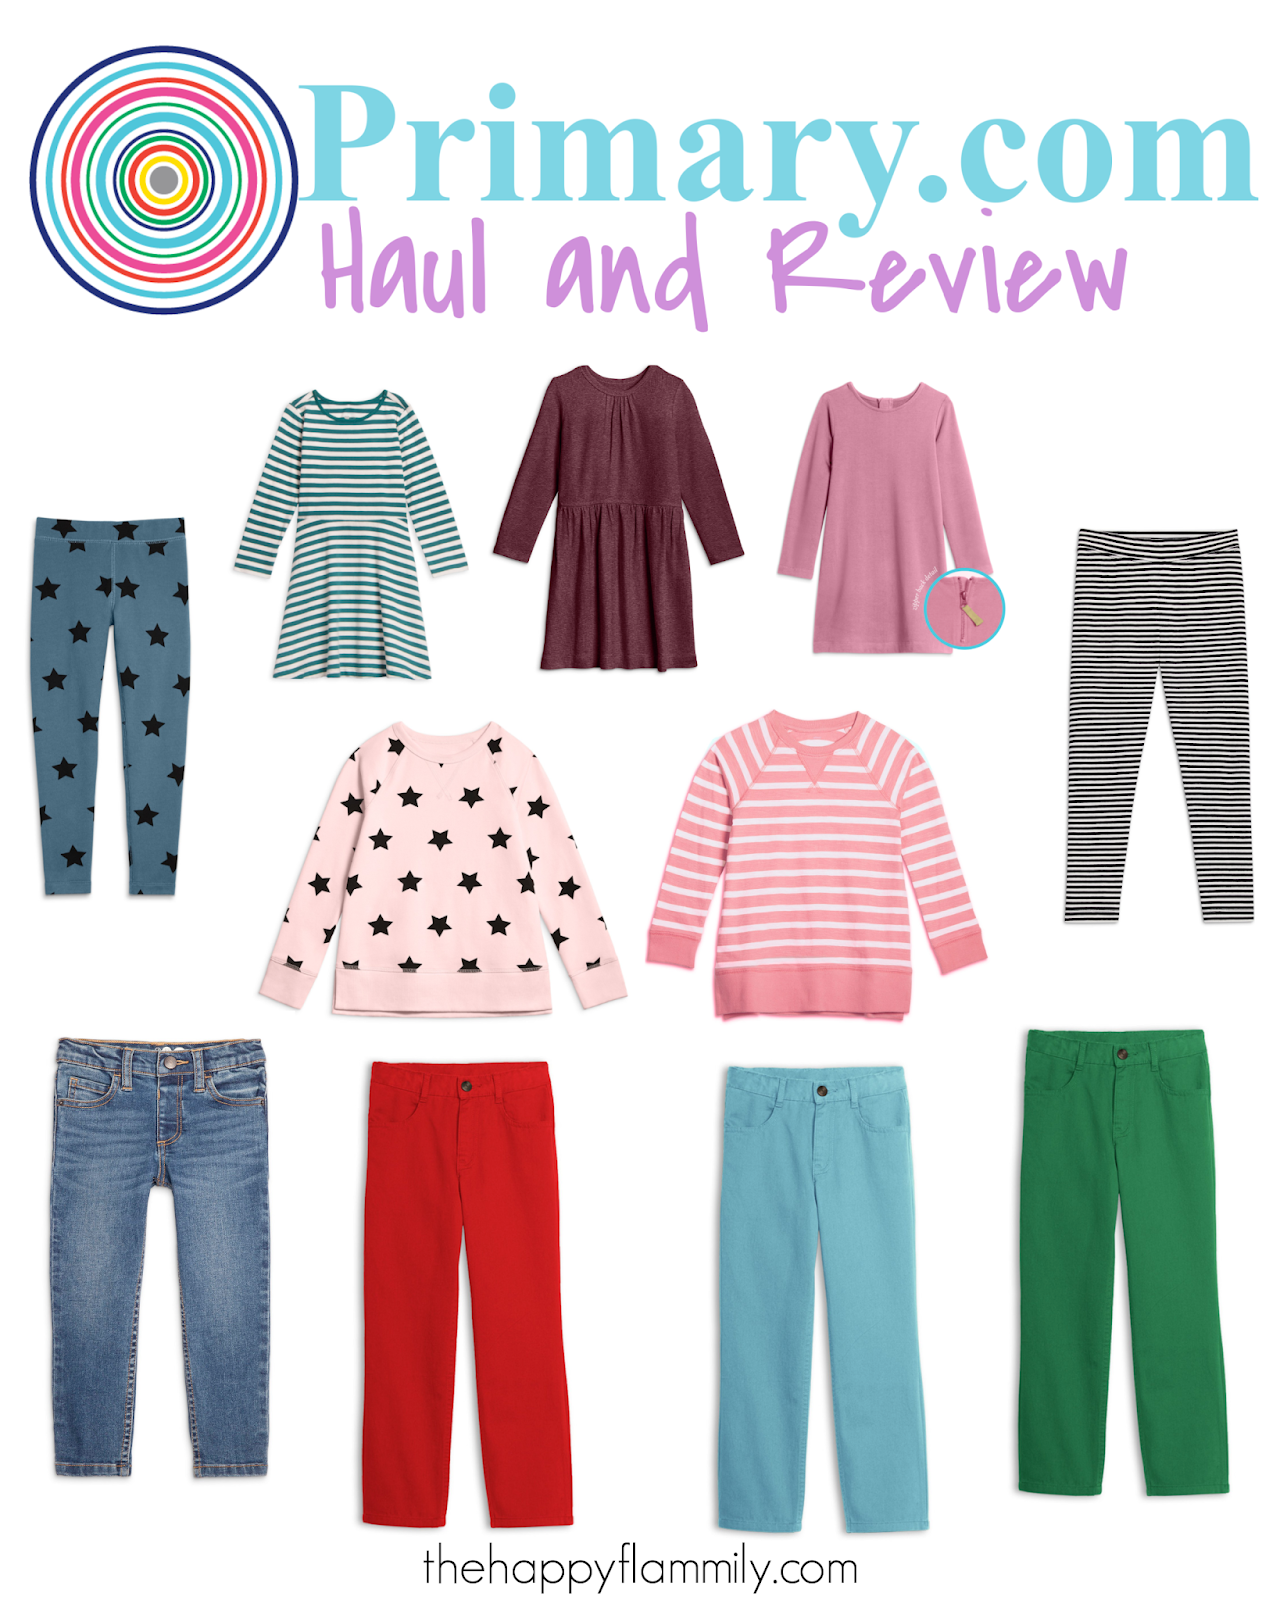 primary.com clothing review. Haul of primary.com clothing. Ethical fashion for kids. Ethical fashion brands for children.